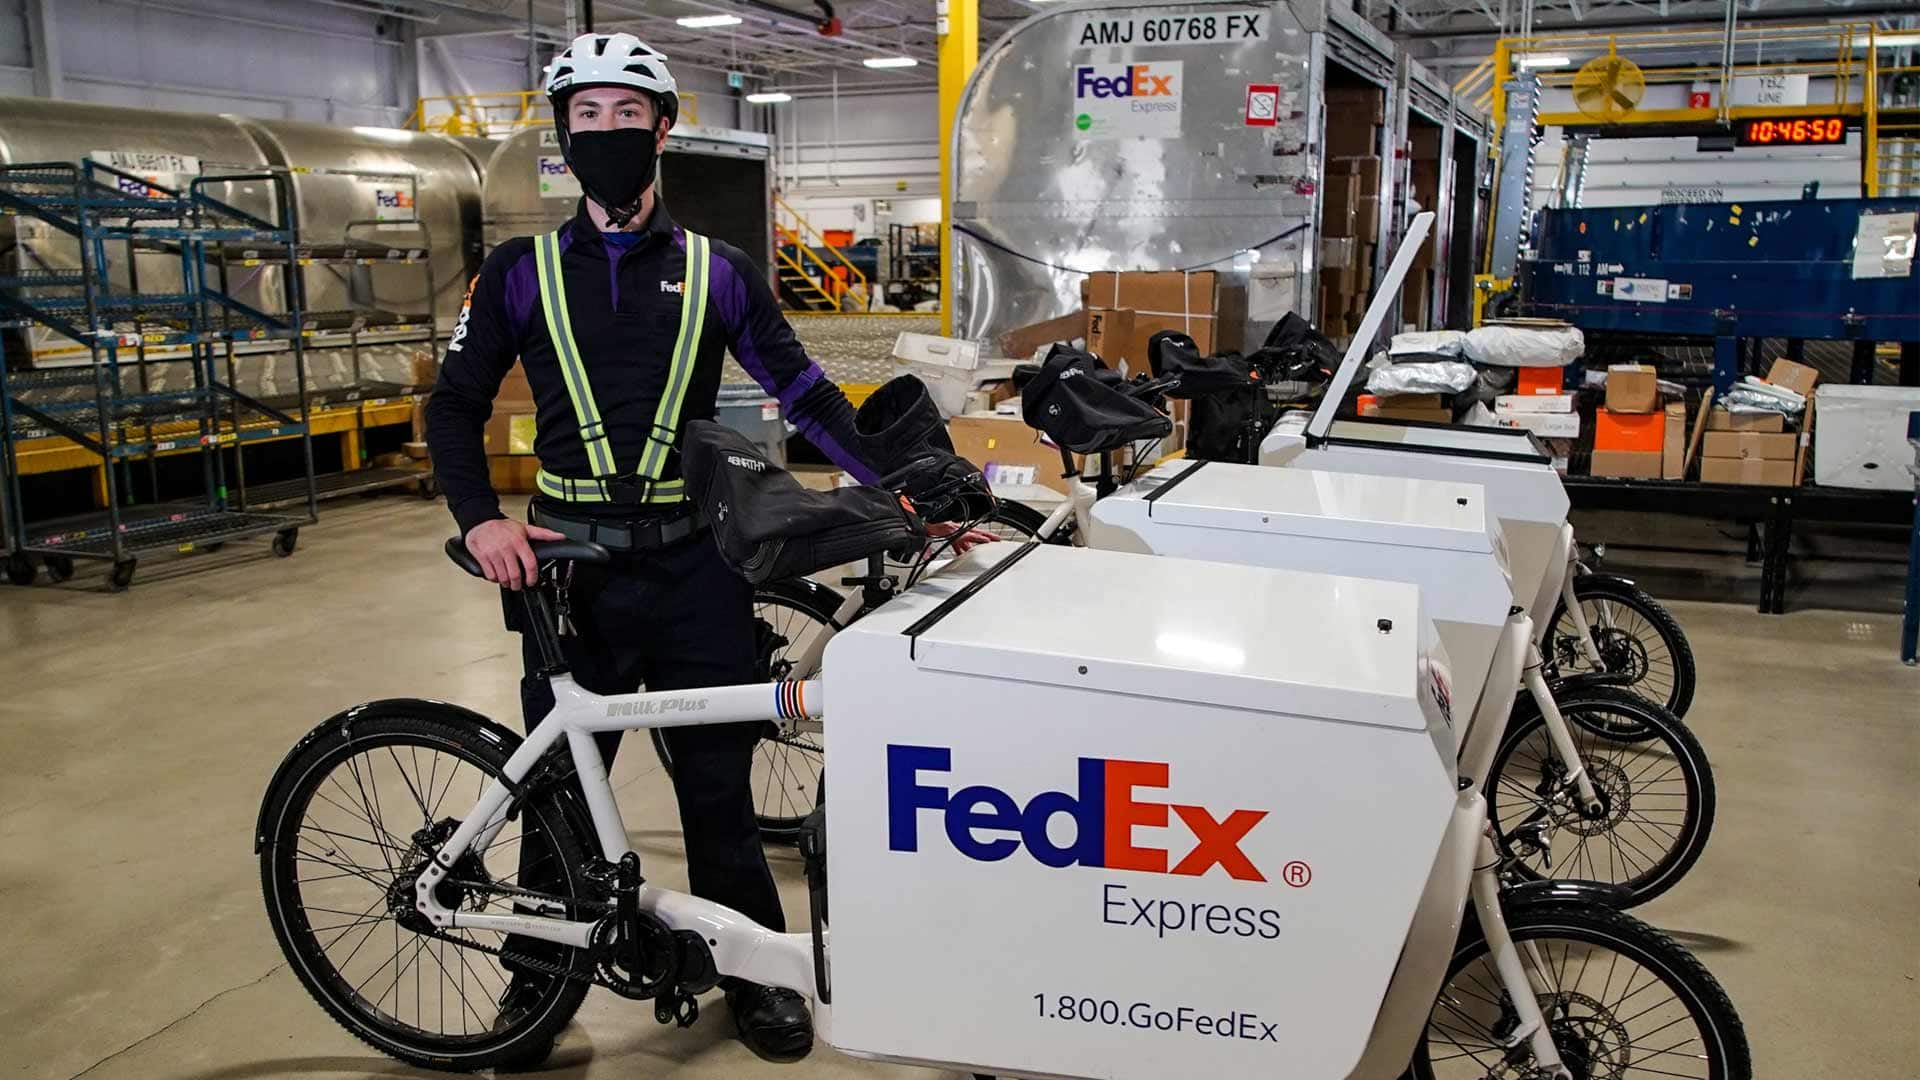 Parcel delivery companies are trading trucks for bikes in some Canadian cities. Here's why